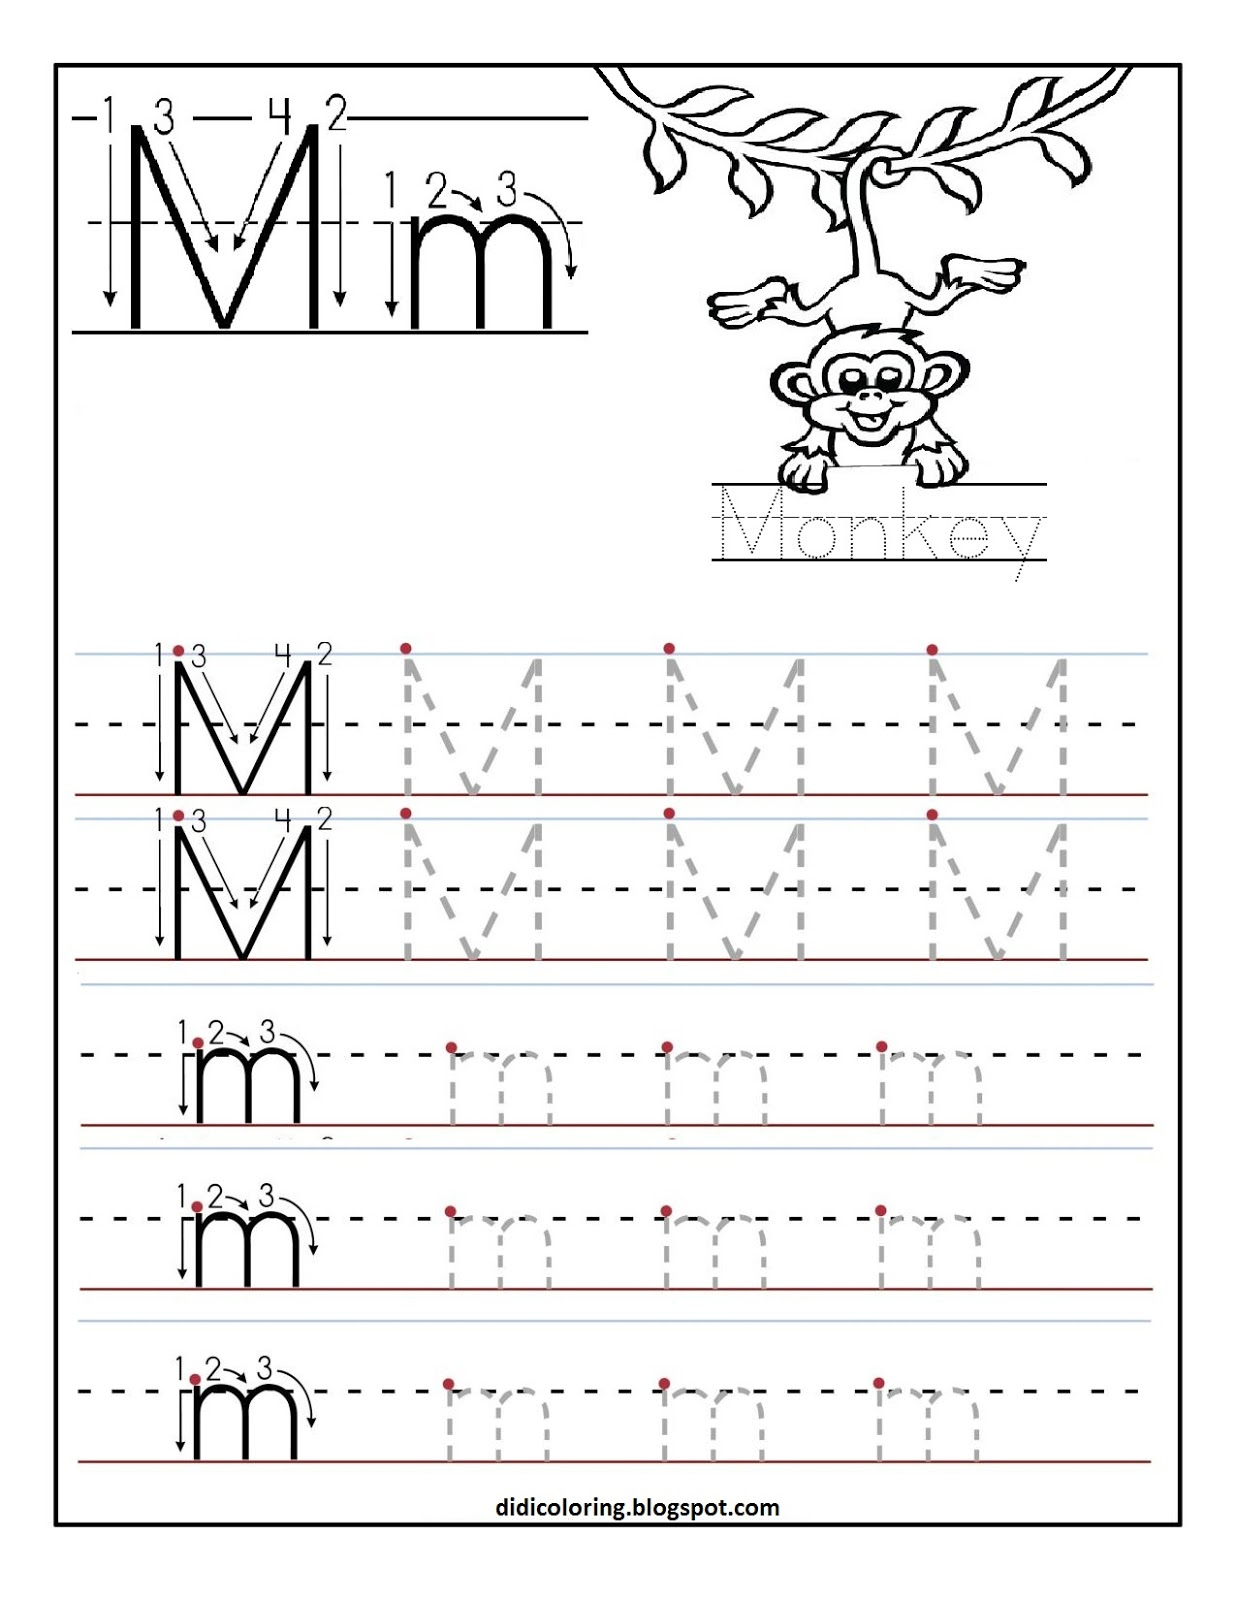 Enjoy Writing Letter Ally Good For Child To Learn Ee Printable Letter M